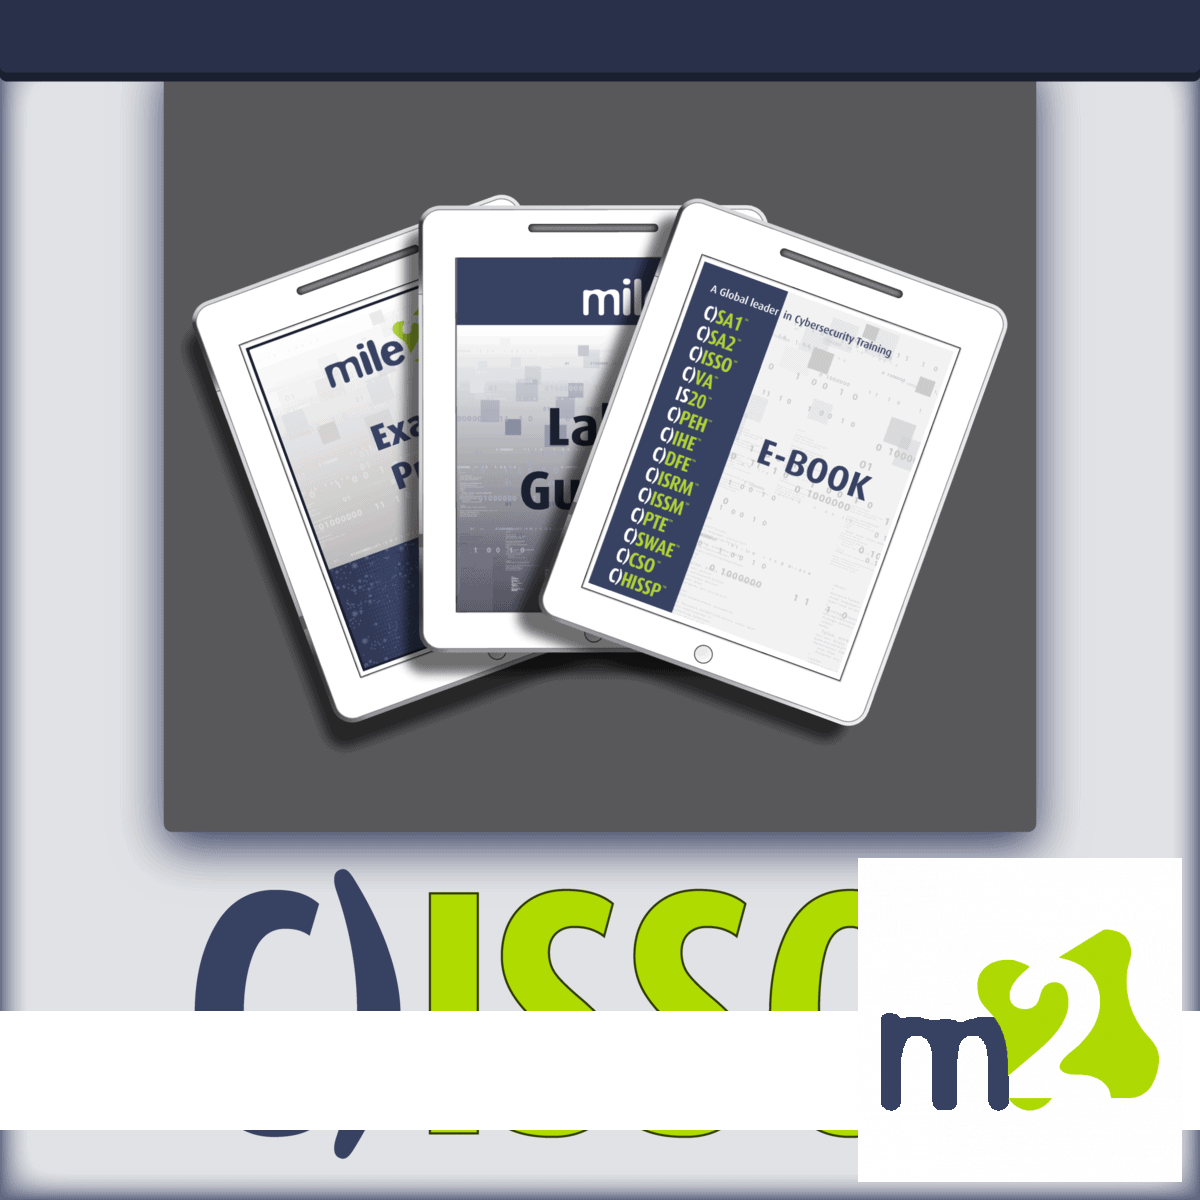 C)ISSO Information Systems Security Officer e-course kit